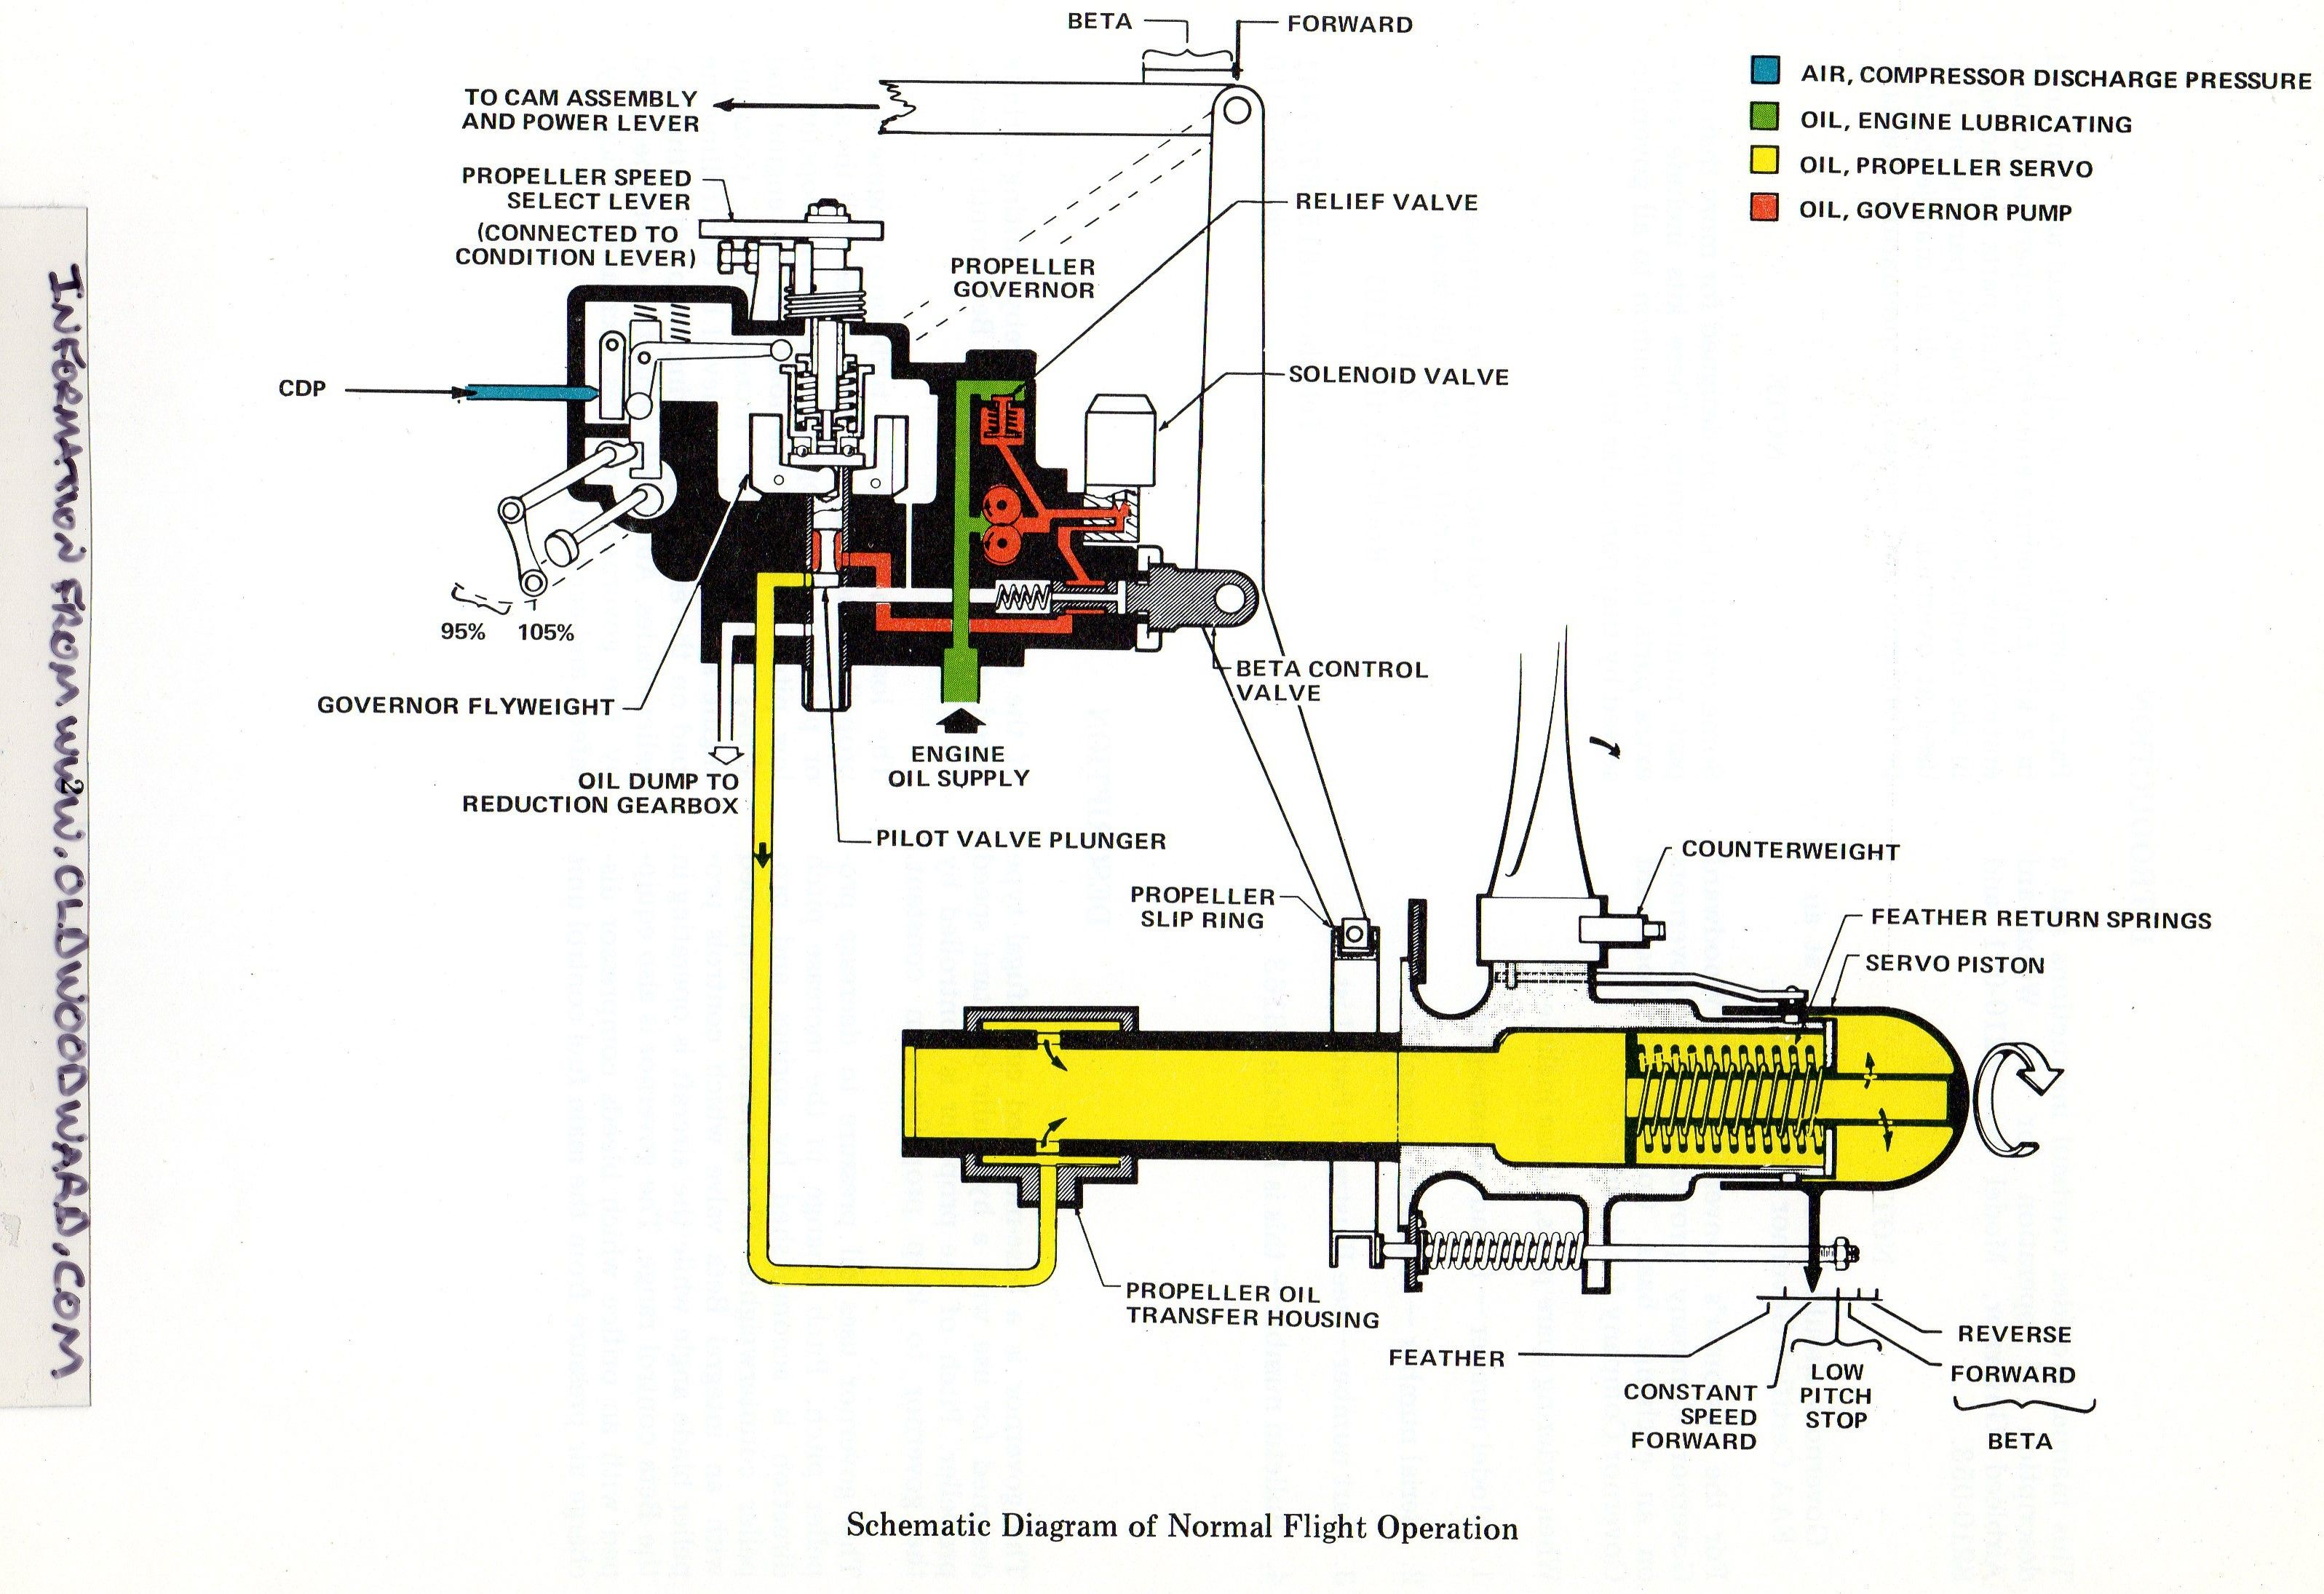 Woodward Governor Company's Airbleed Governor schematic drawing for  aircraft turbine engine applications(PT6).